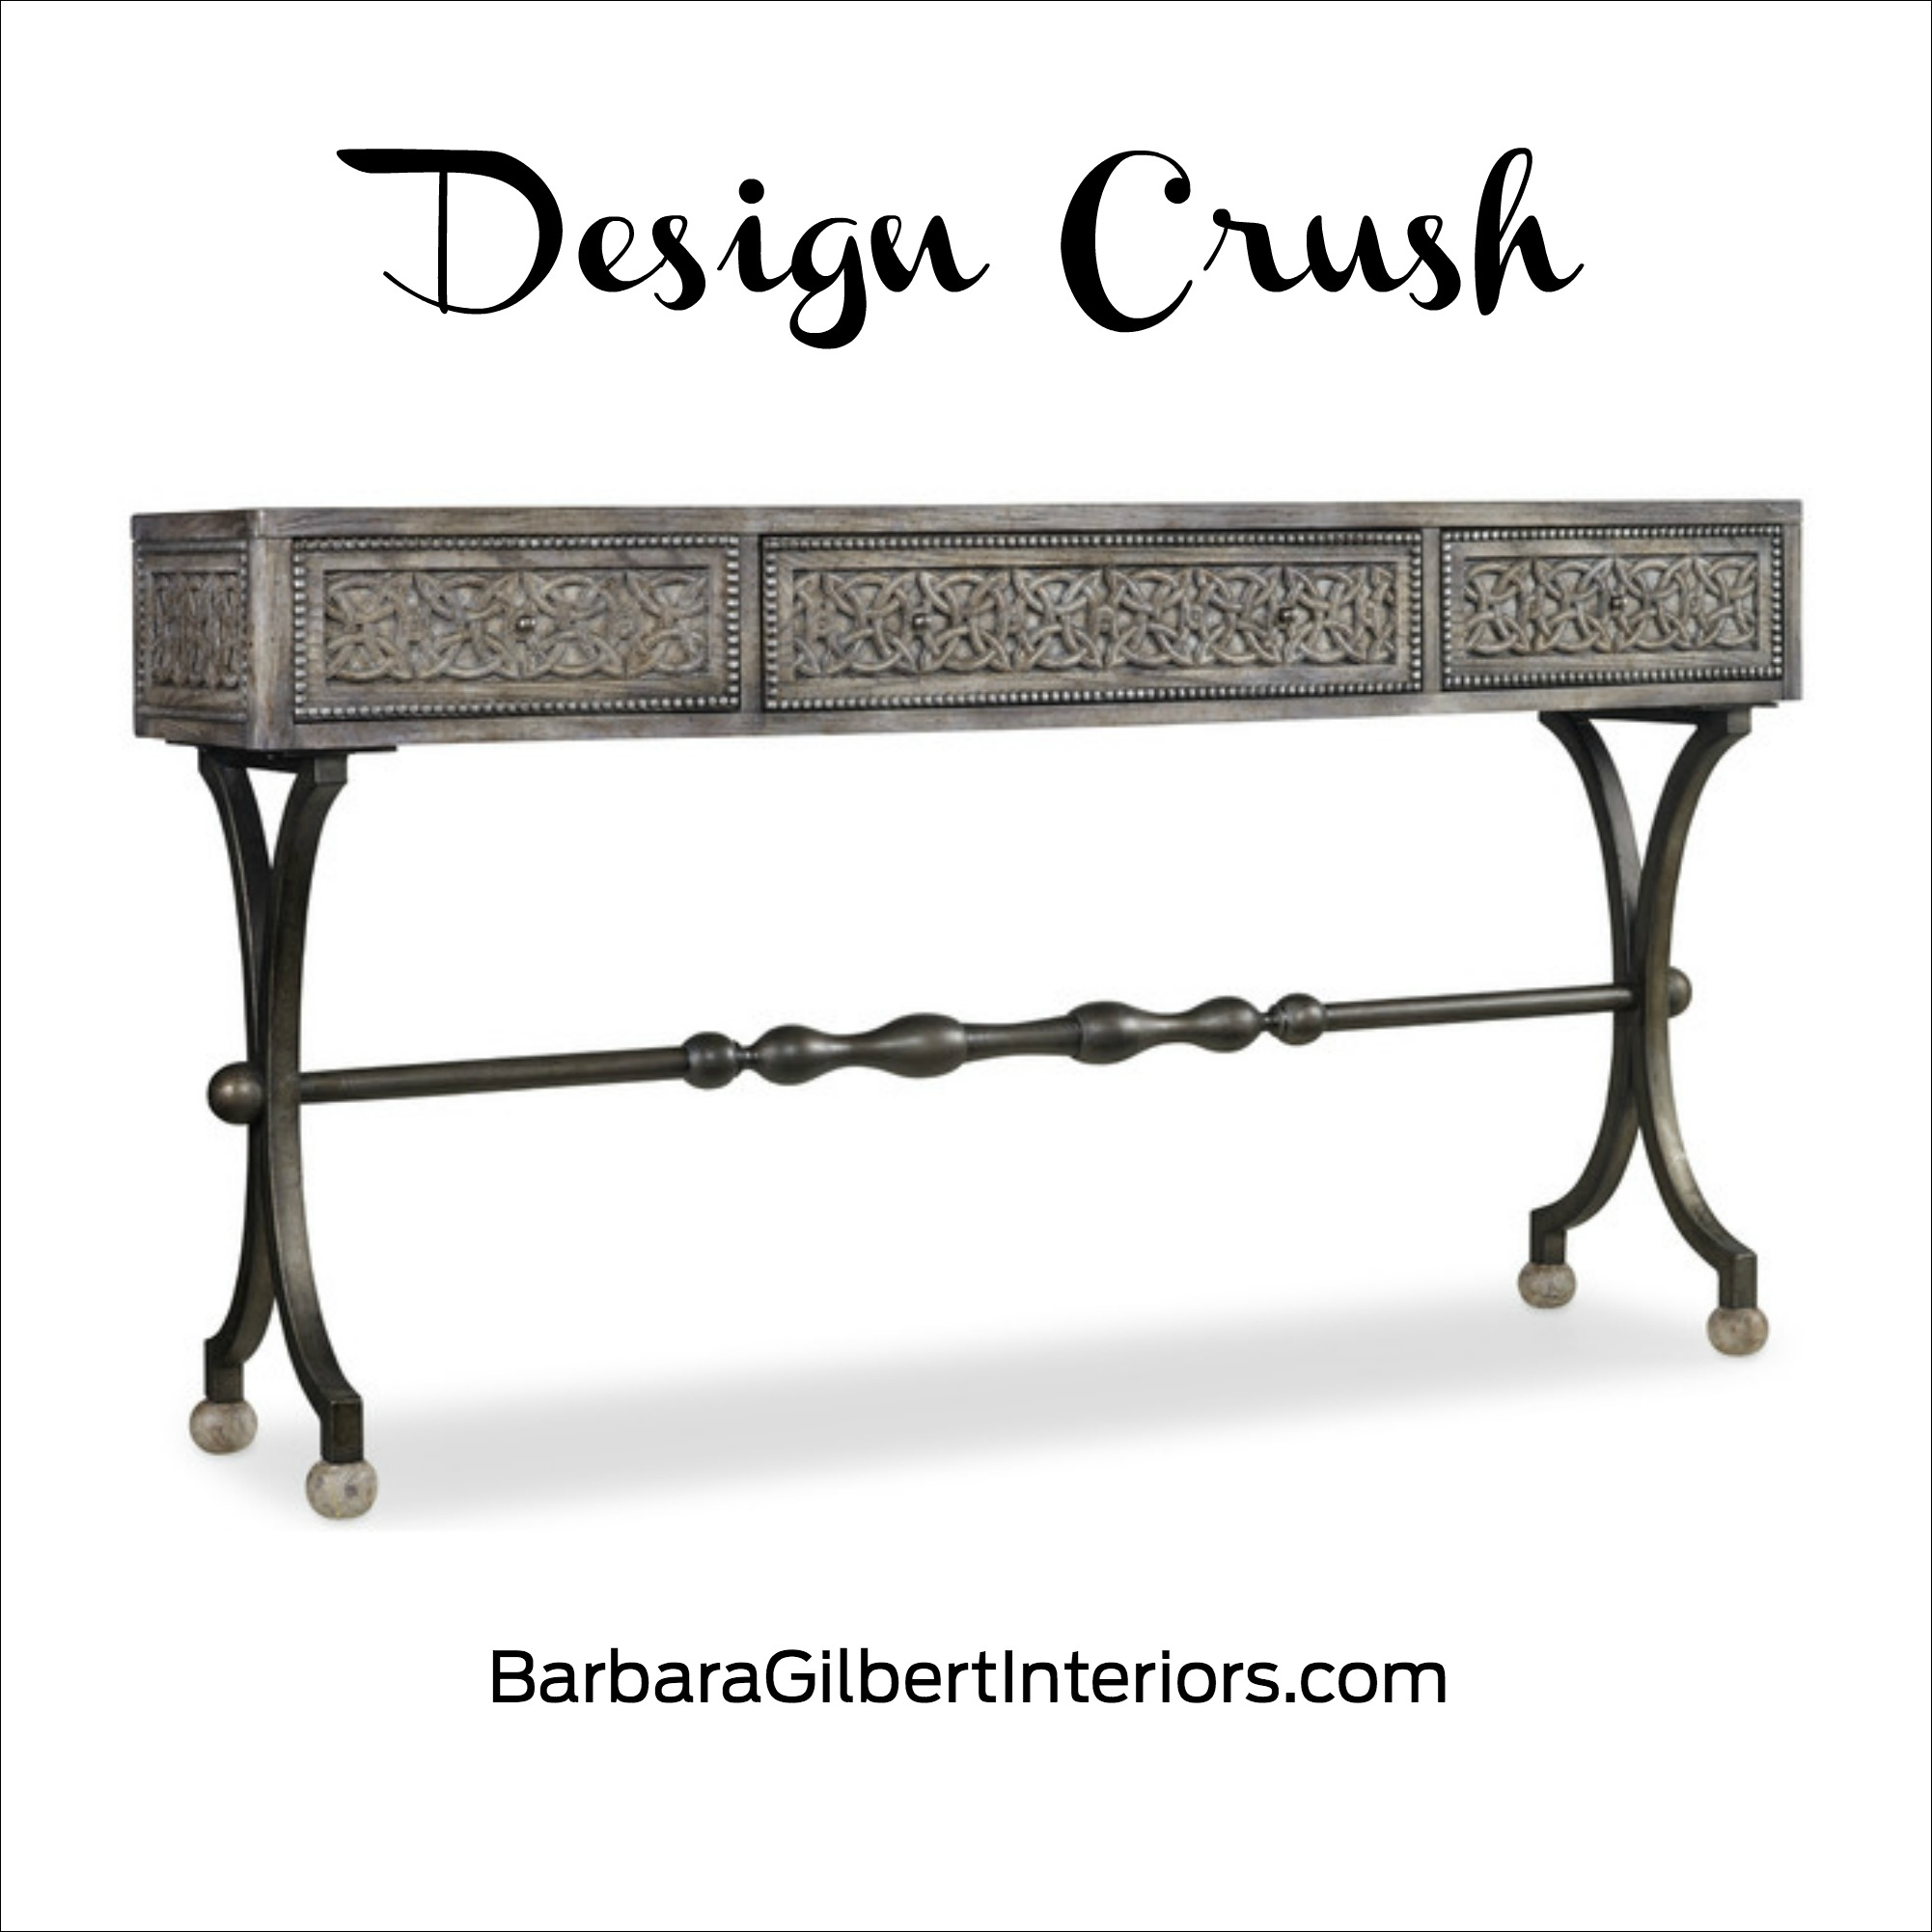 Design Crush: Intricate Entry Table | Interior Design Dallas | Barbara Gilbert Interiors